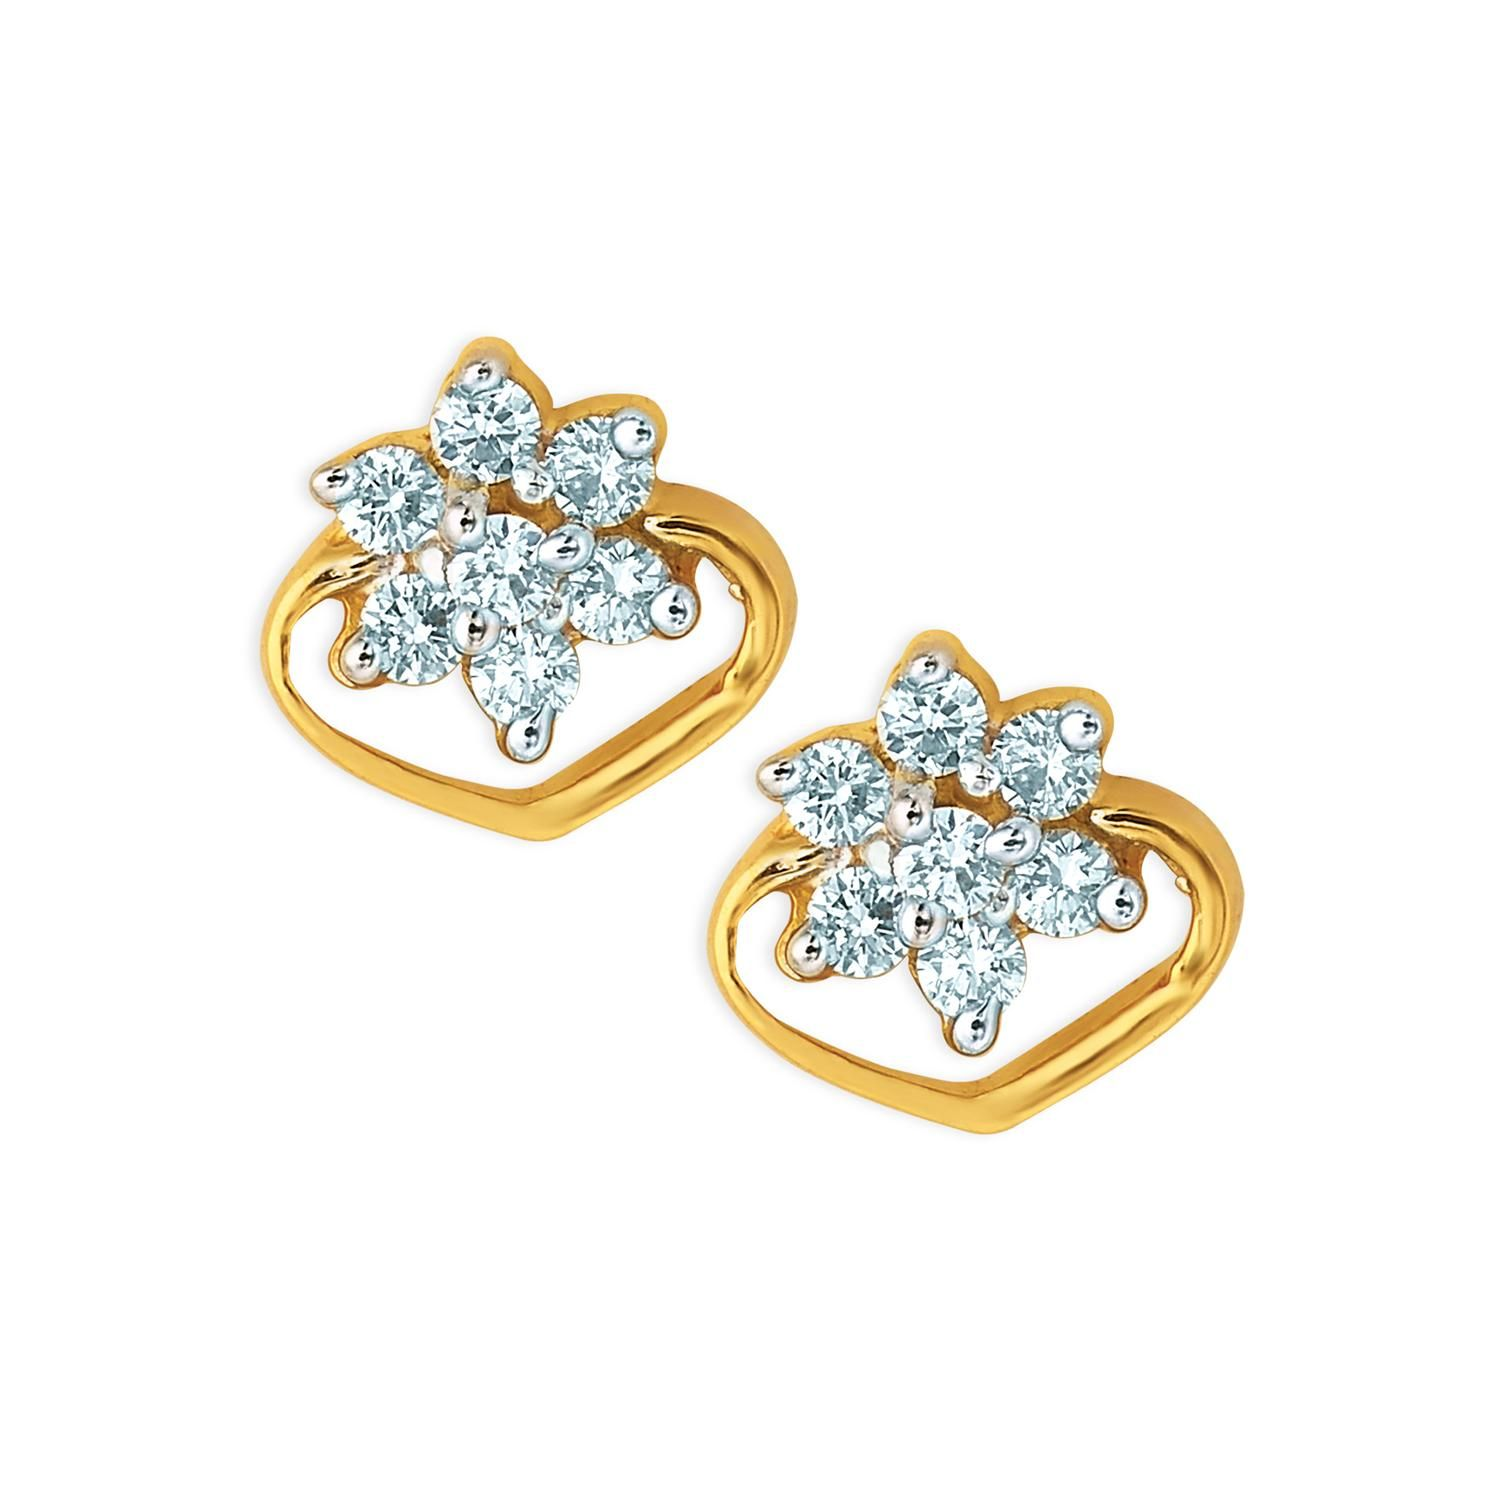 Diamond Earrings Online At Best Rates In India An